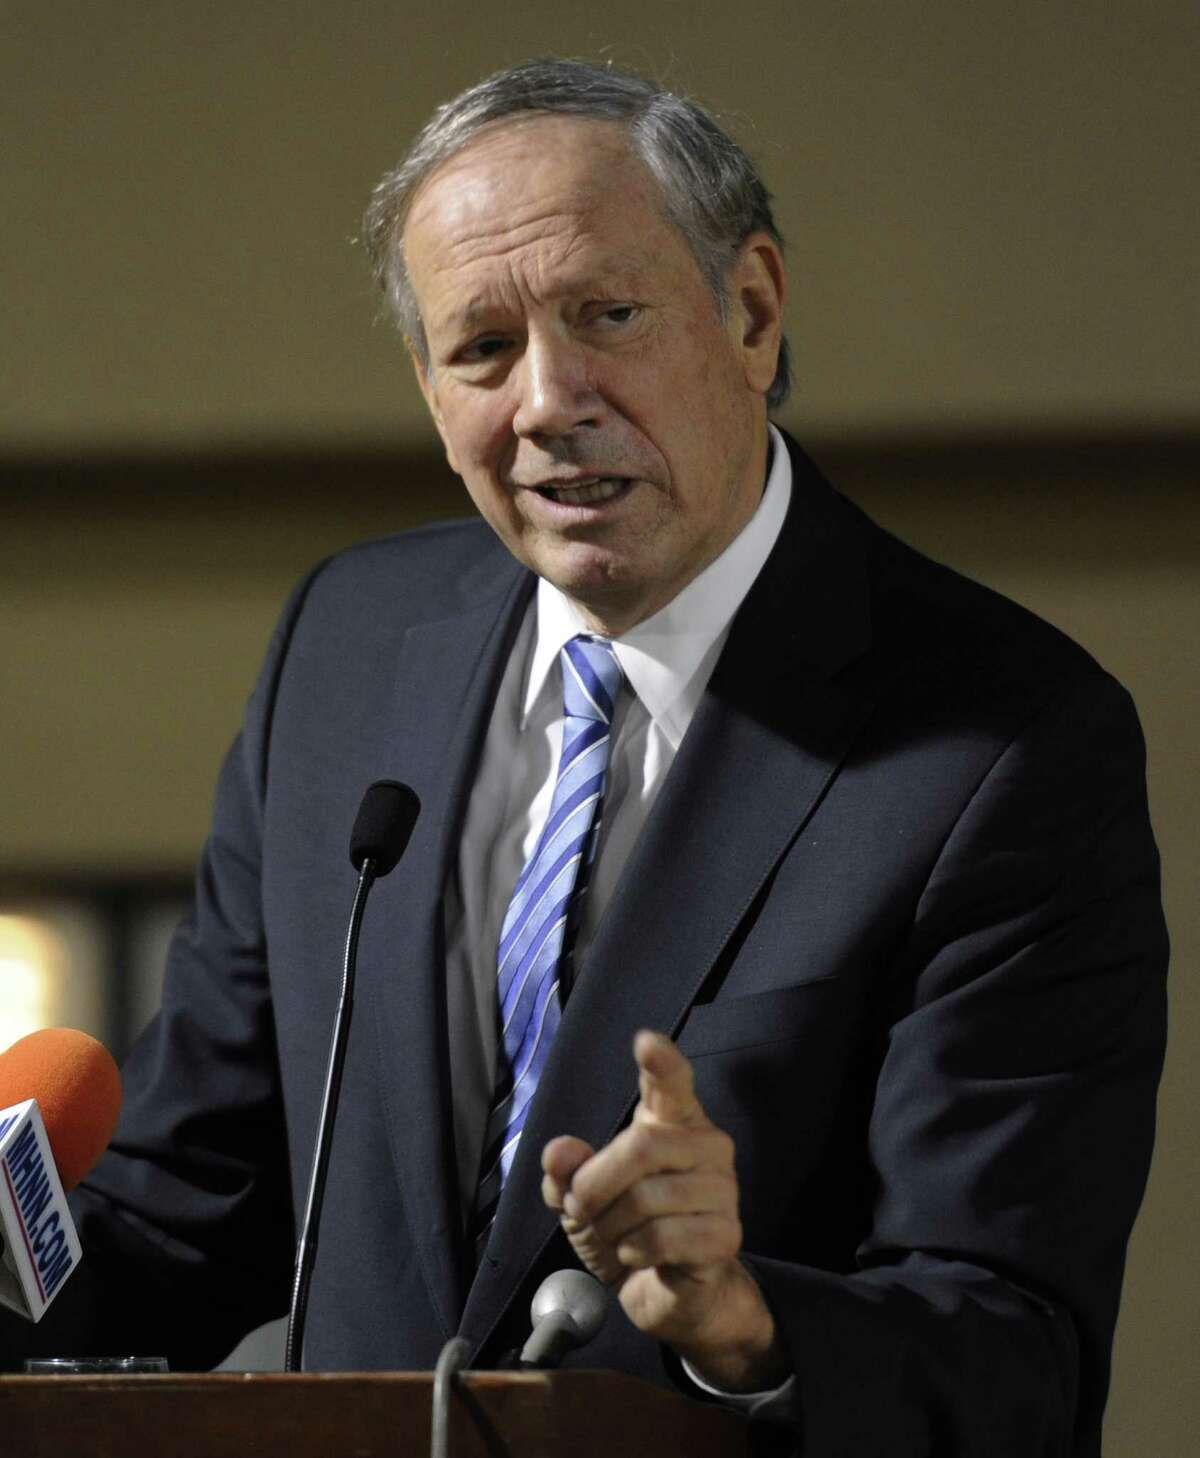 Former New York Governor George Pataki speaks at the NYS Conservative Party luncheon at the Holiday Inn in Colonie, N.Y. Jan. 30, 2012. Trump?s final contribution to Republican George Pataki was a $10,000 gift in 2000. (Skip Dickstein/Times Union archive)